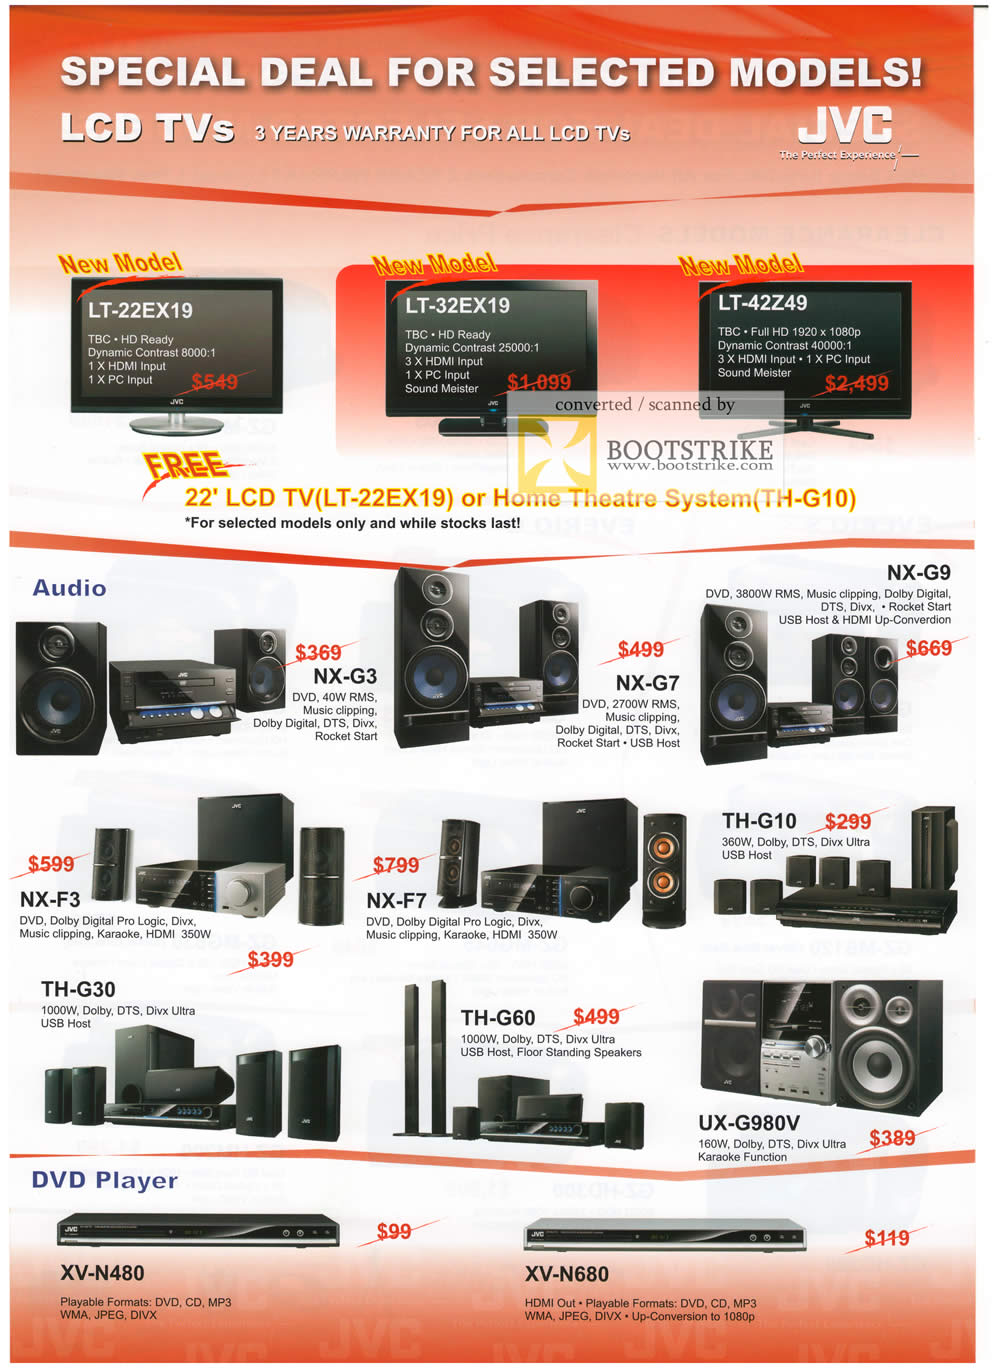 Comex 2009 price list image brochure of JVC LCD TV Hifi DVD Player